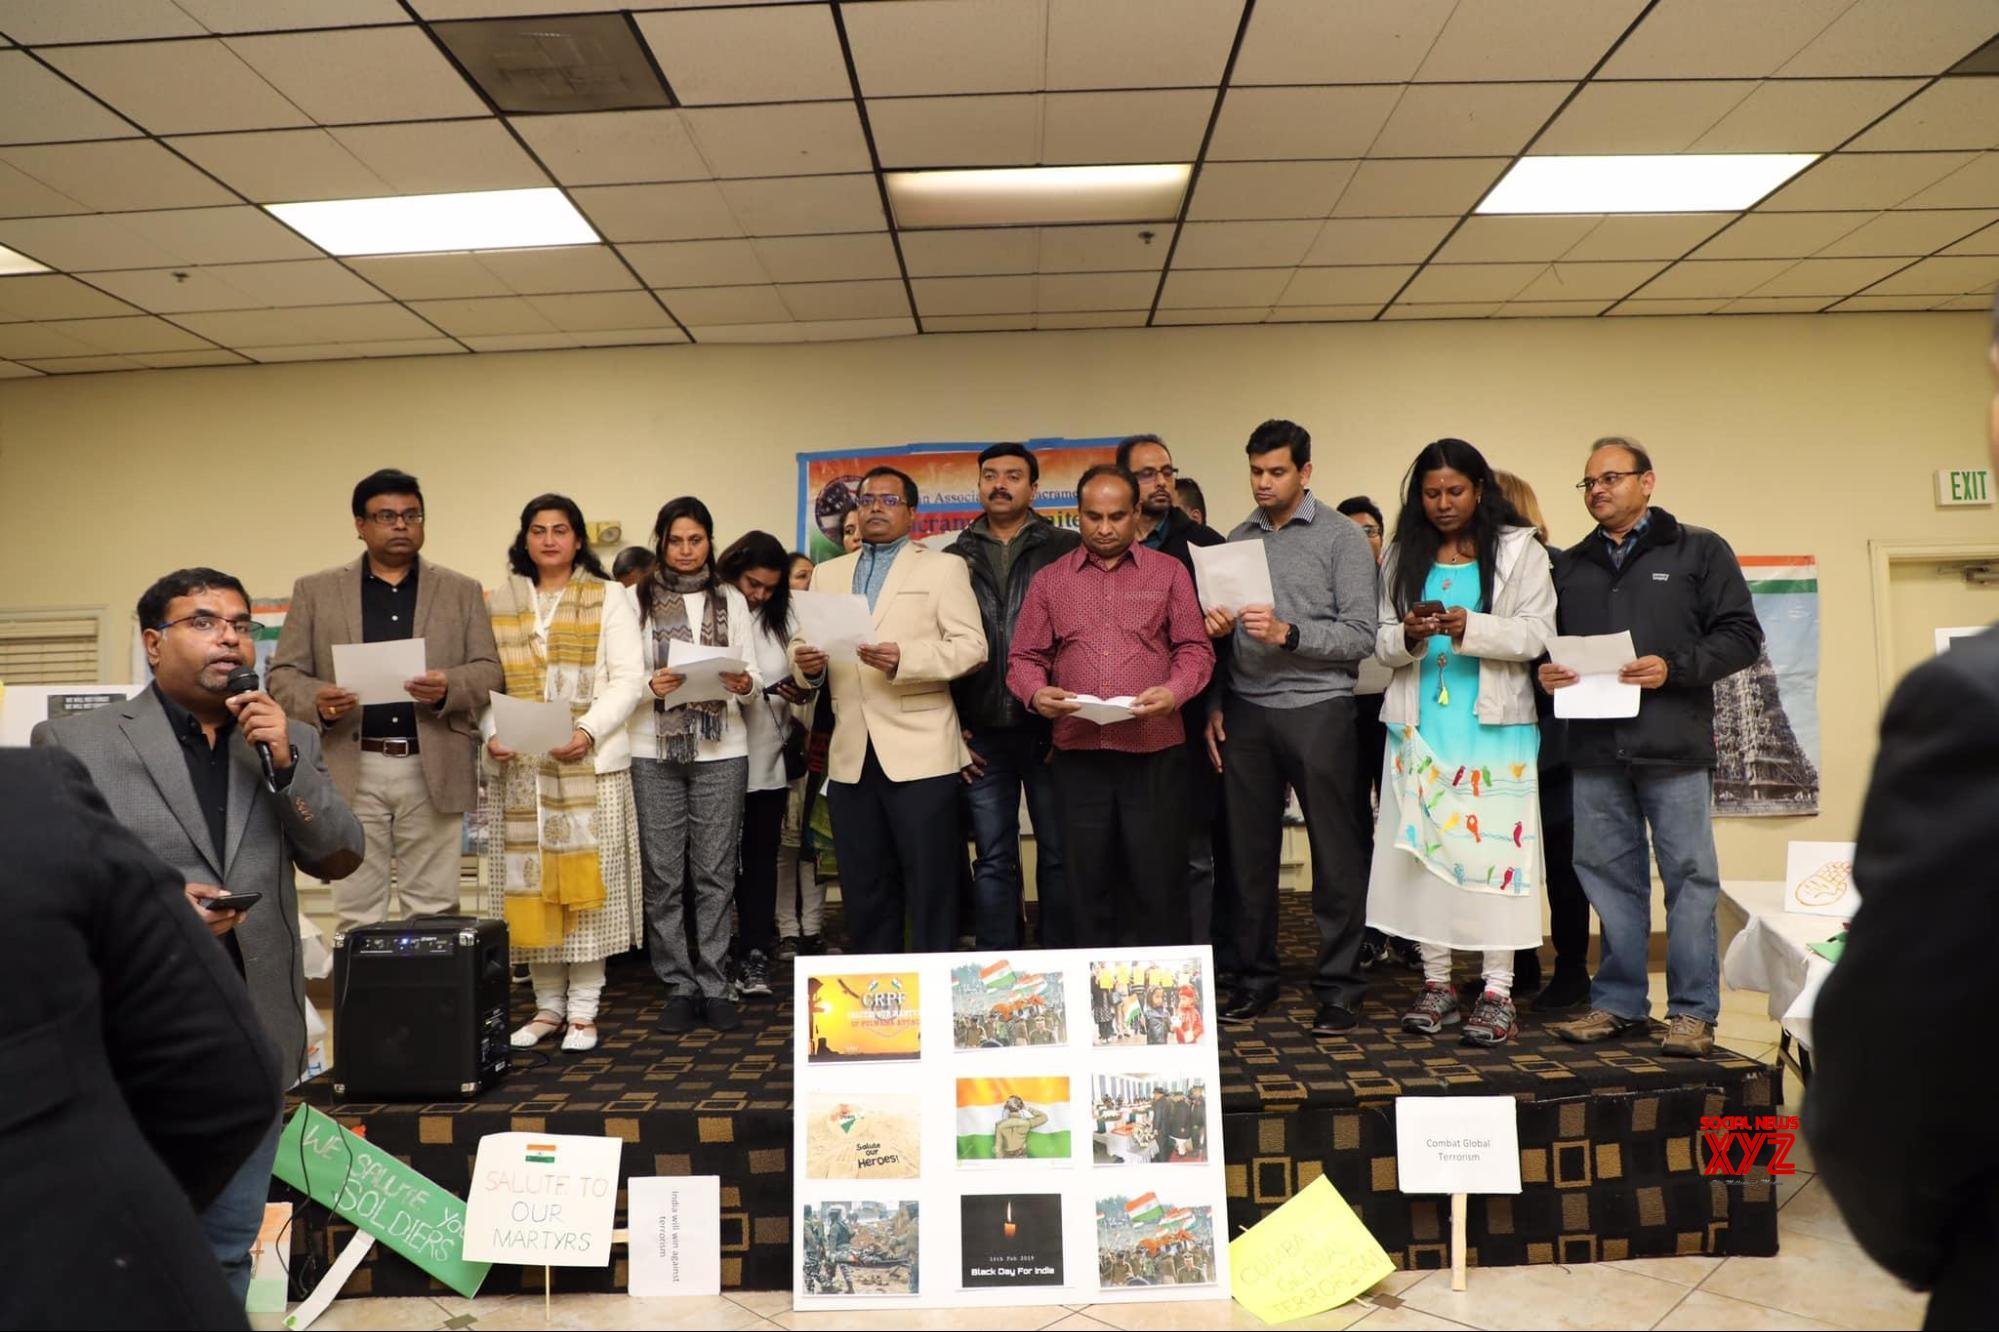 Candlelight Vigil held in Sacramento California to pay honor to the Pulwama terrorist attack victims